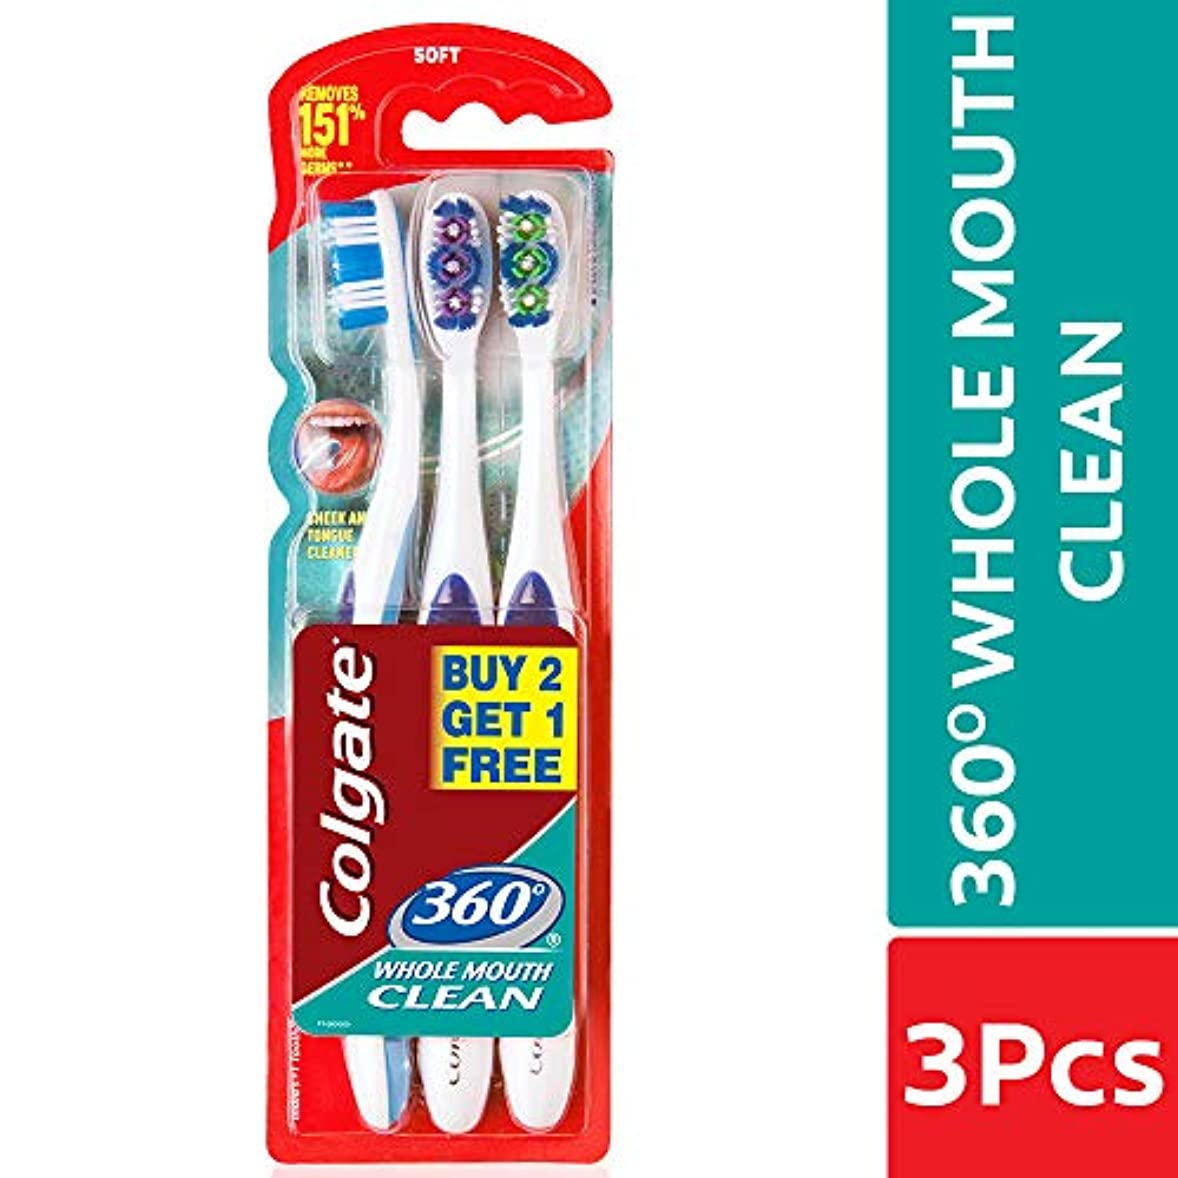 インサートヘリコプターアルバムColgate 360 whole mouth clean (MEDIUM) toothbrush (3pc pack)